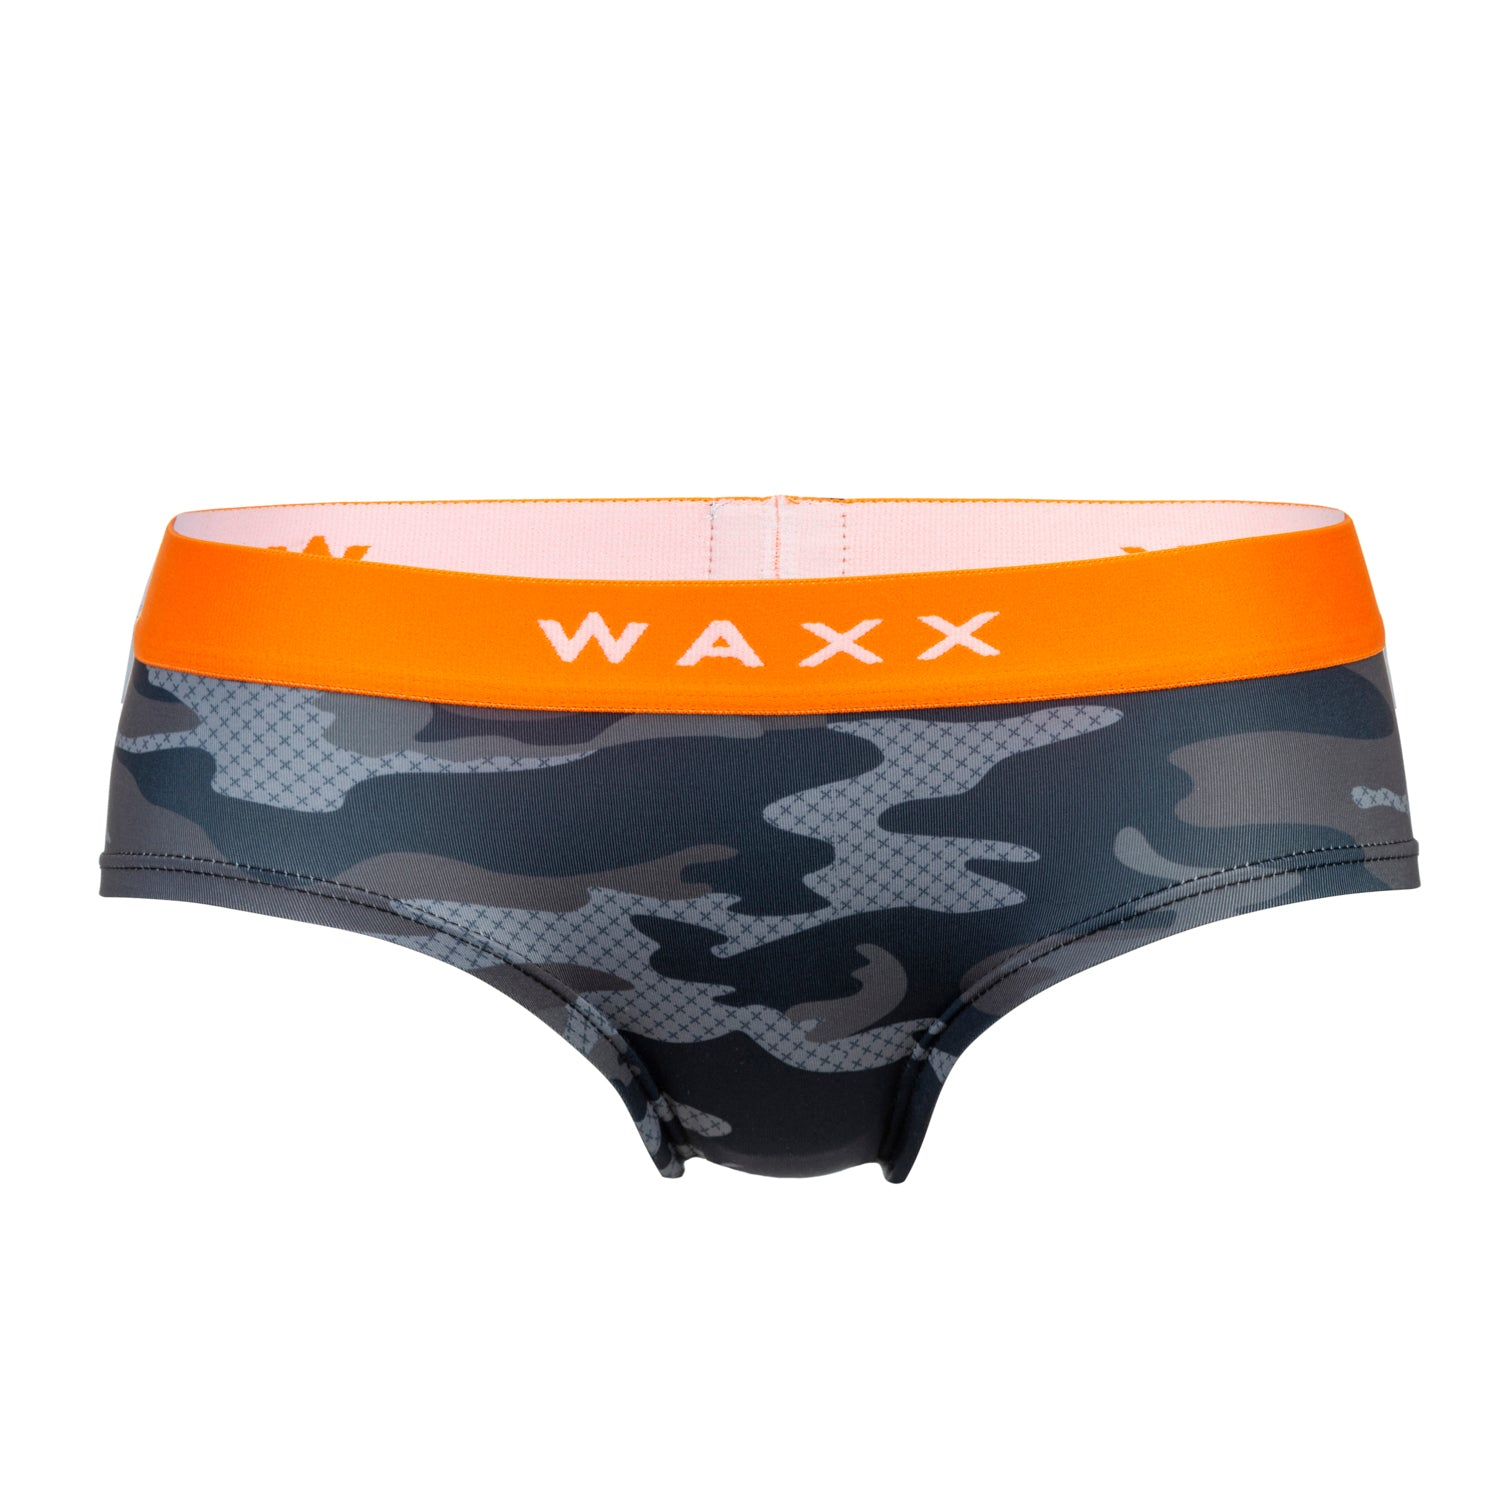 Waxx Women's Boy Short Camo